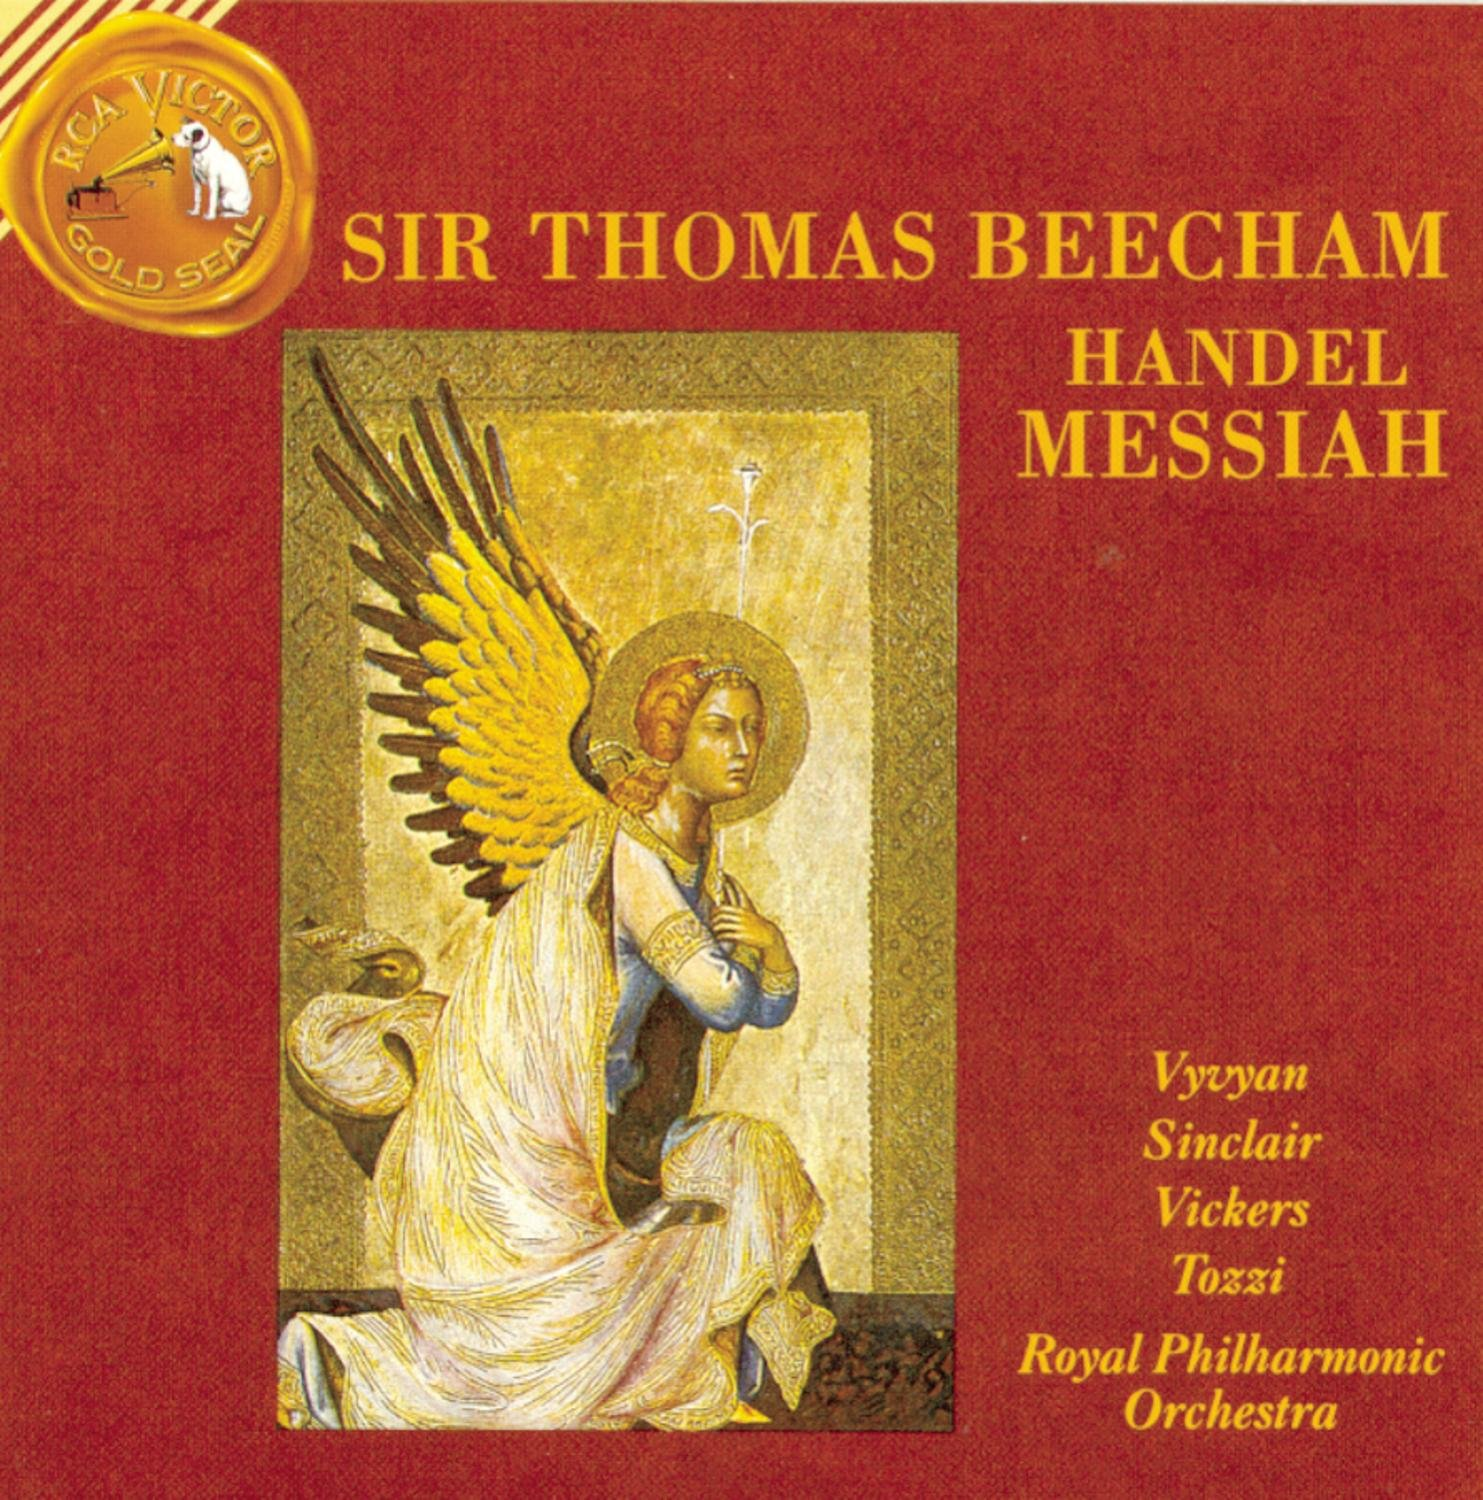 Handel - Messiah / Vyvyan · Sinclair · Vickers · Tozzi · Royal PO · Beecham by HANDEL,G.F.